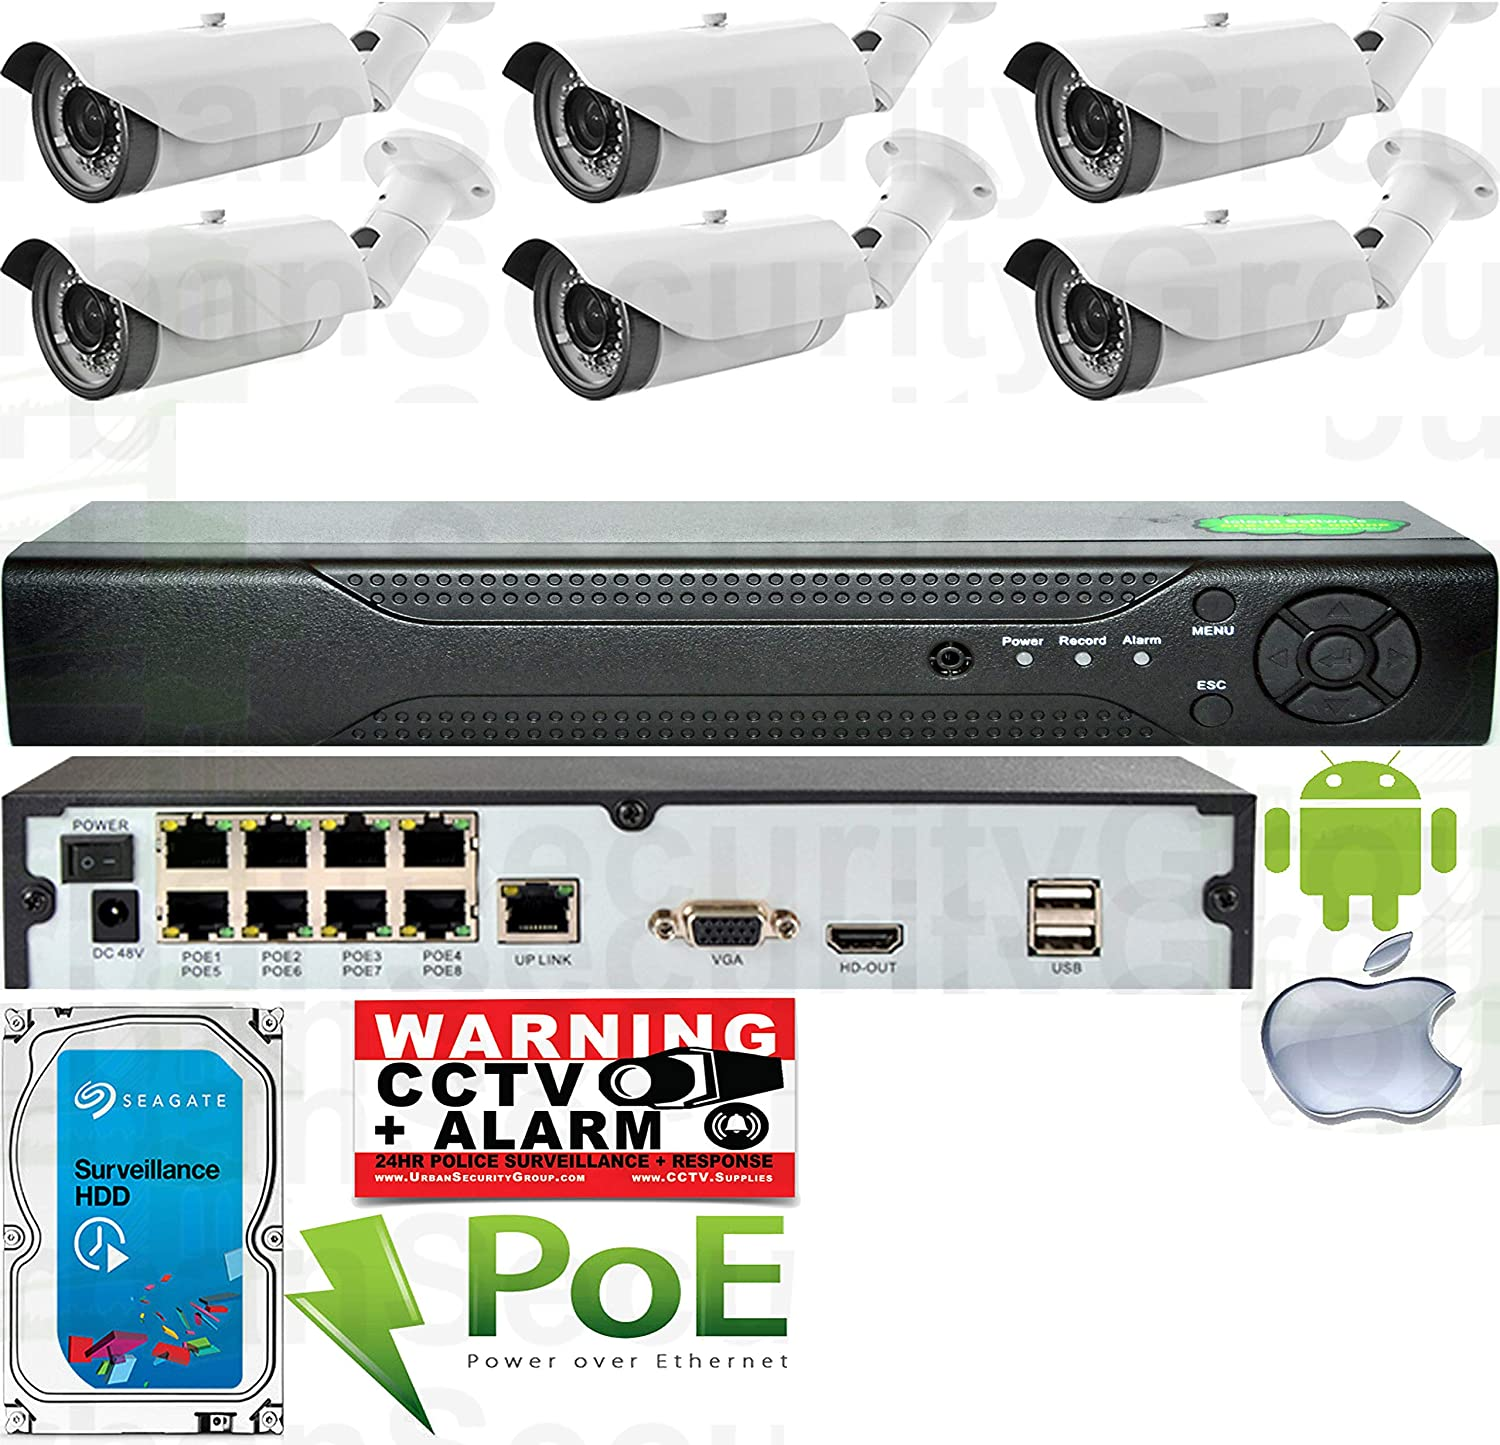 USG 6 Camera Motorized Lens Remote Zoom & Auto-Focus IP PoE Security System CCTV Kit : 6X 1080p 2mp 2.8-12mm Bullet Cameras + 1x 8 Channel 1080P PoE NVR + 1x 4TB HDD : Remote Viewing